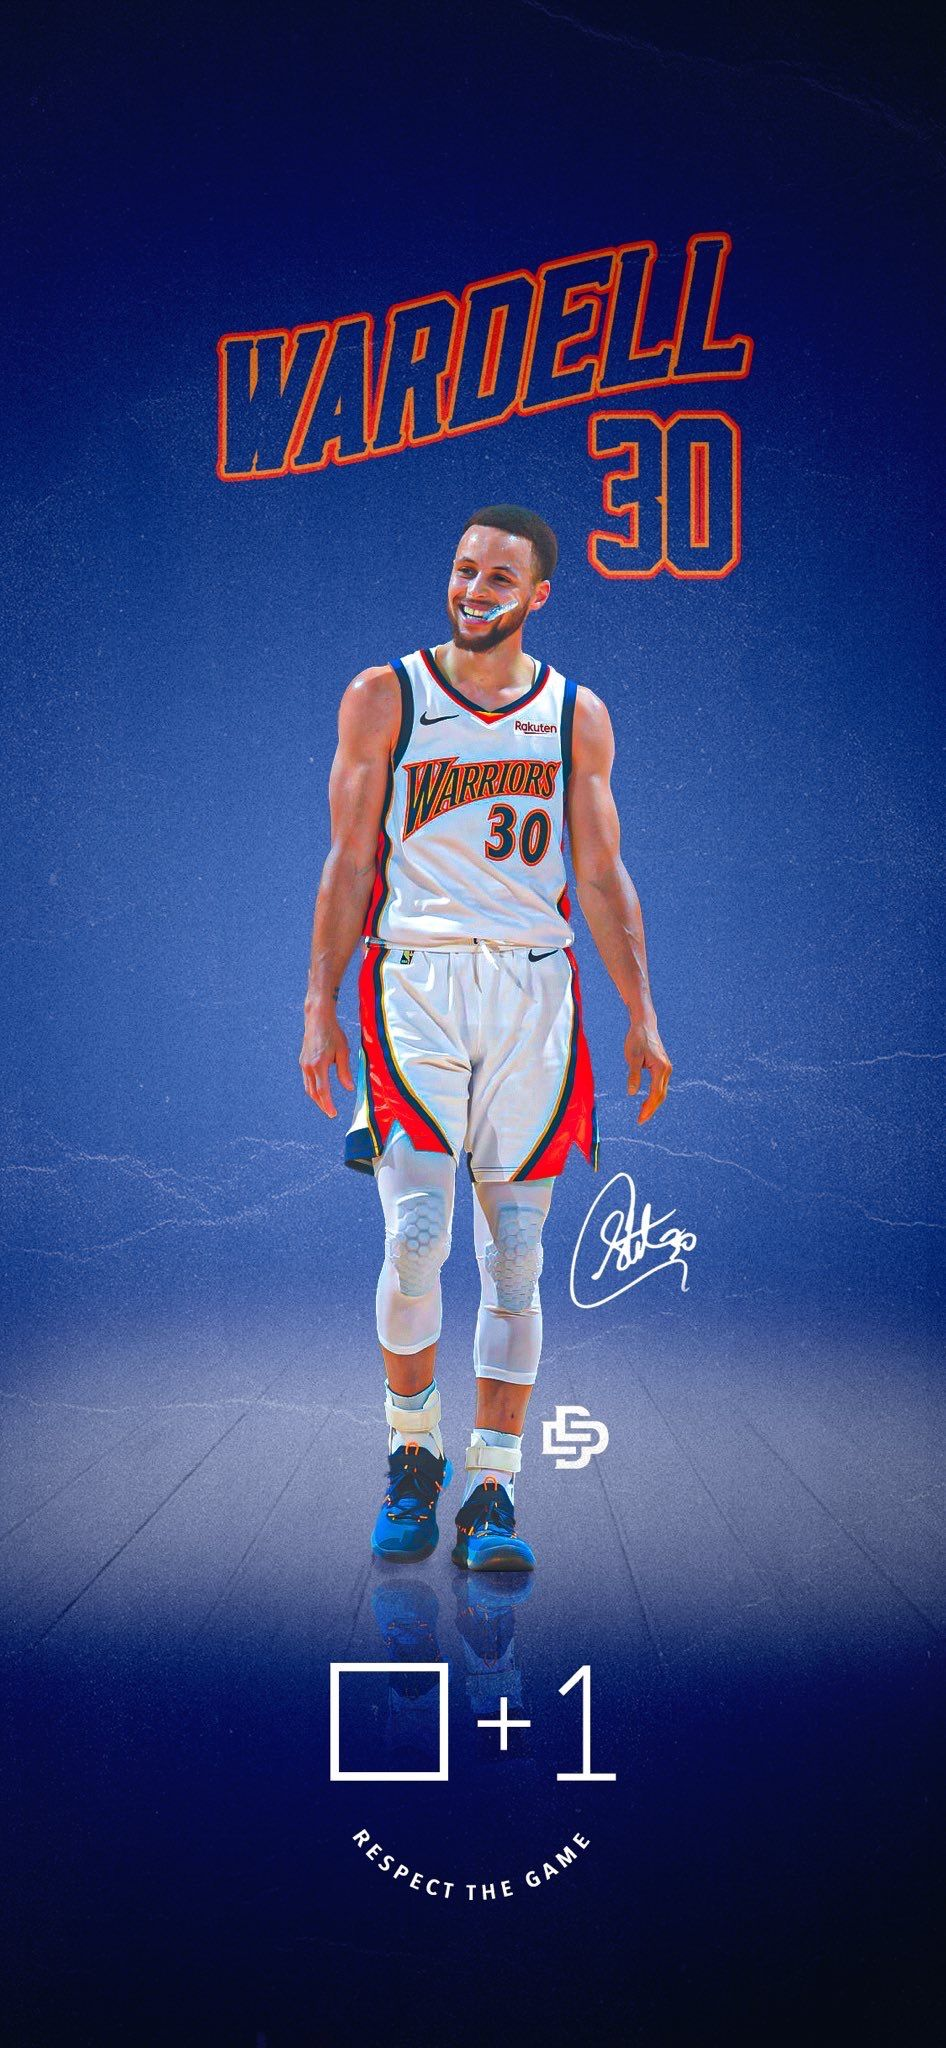 Stephen Curry Steph Curry Wallpapers Nba Wallpapers Stephen Curry Stephen Curry Wallpaper Iphone home screen iphone stephen curry